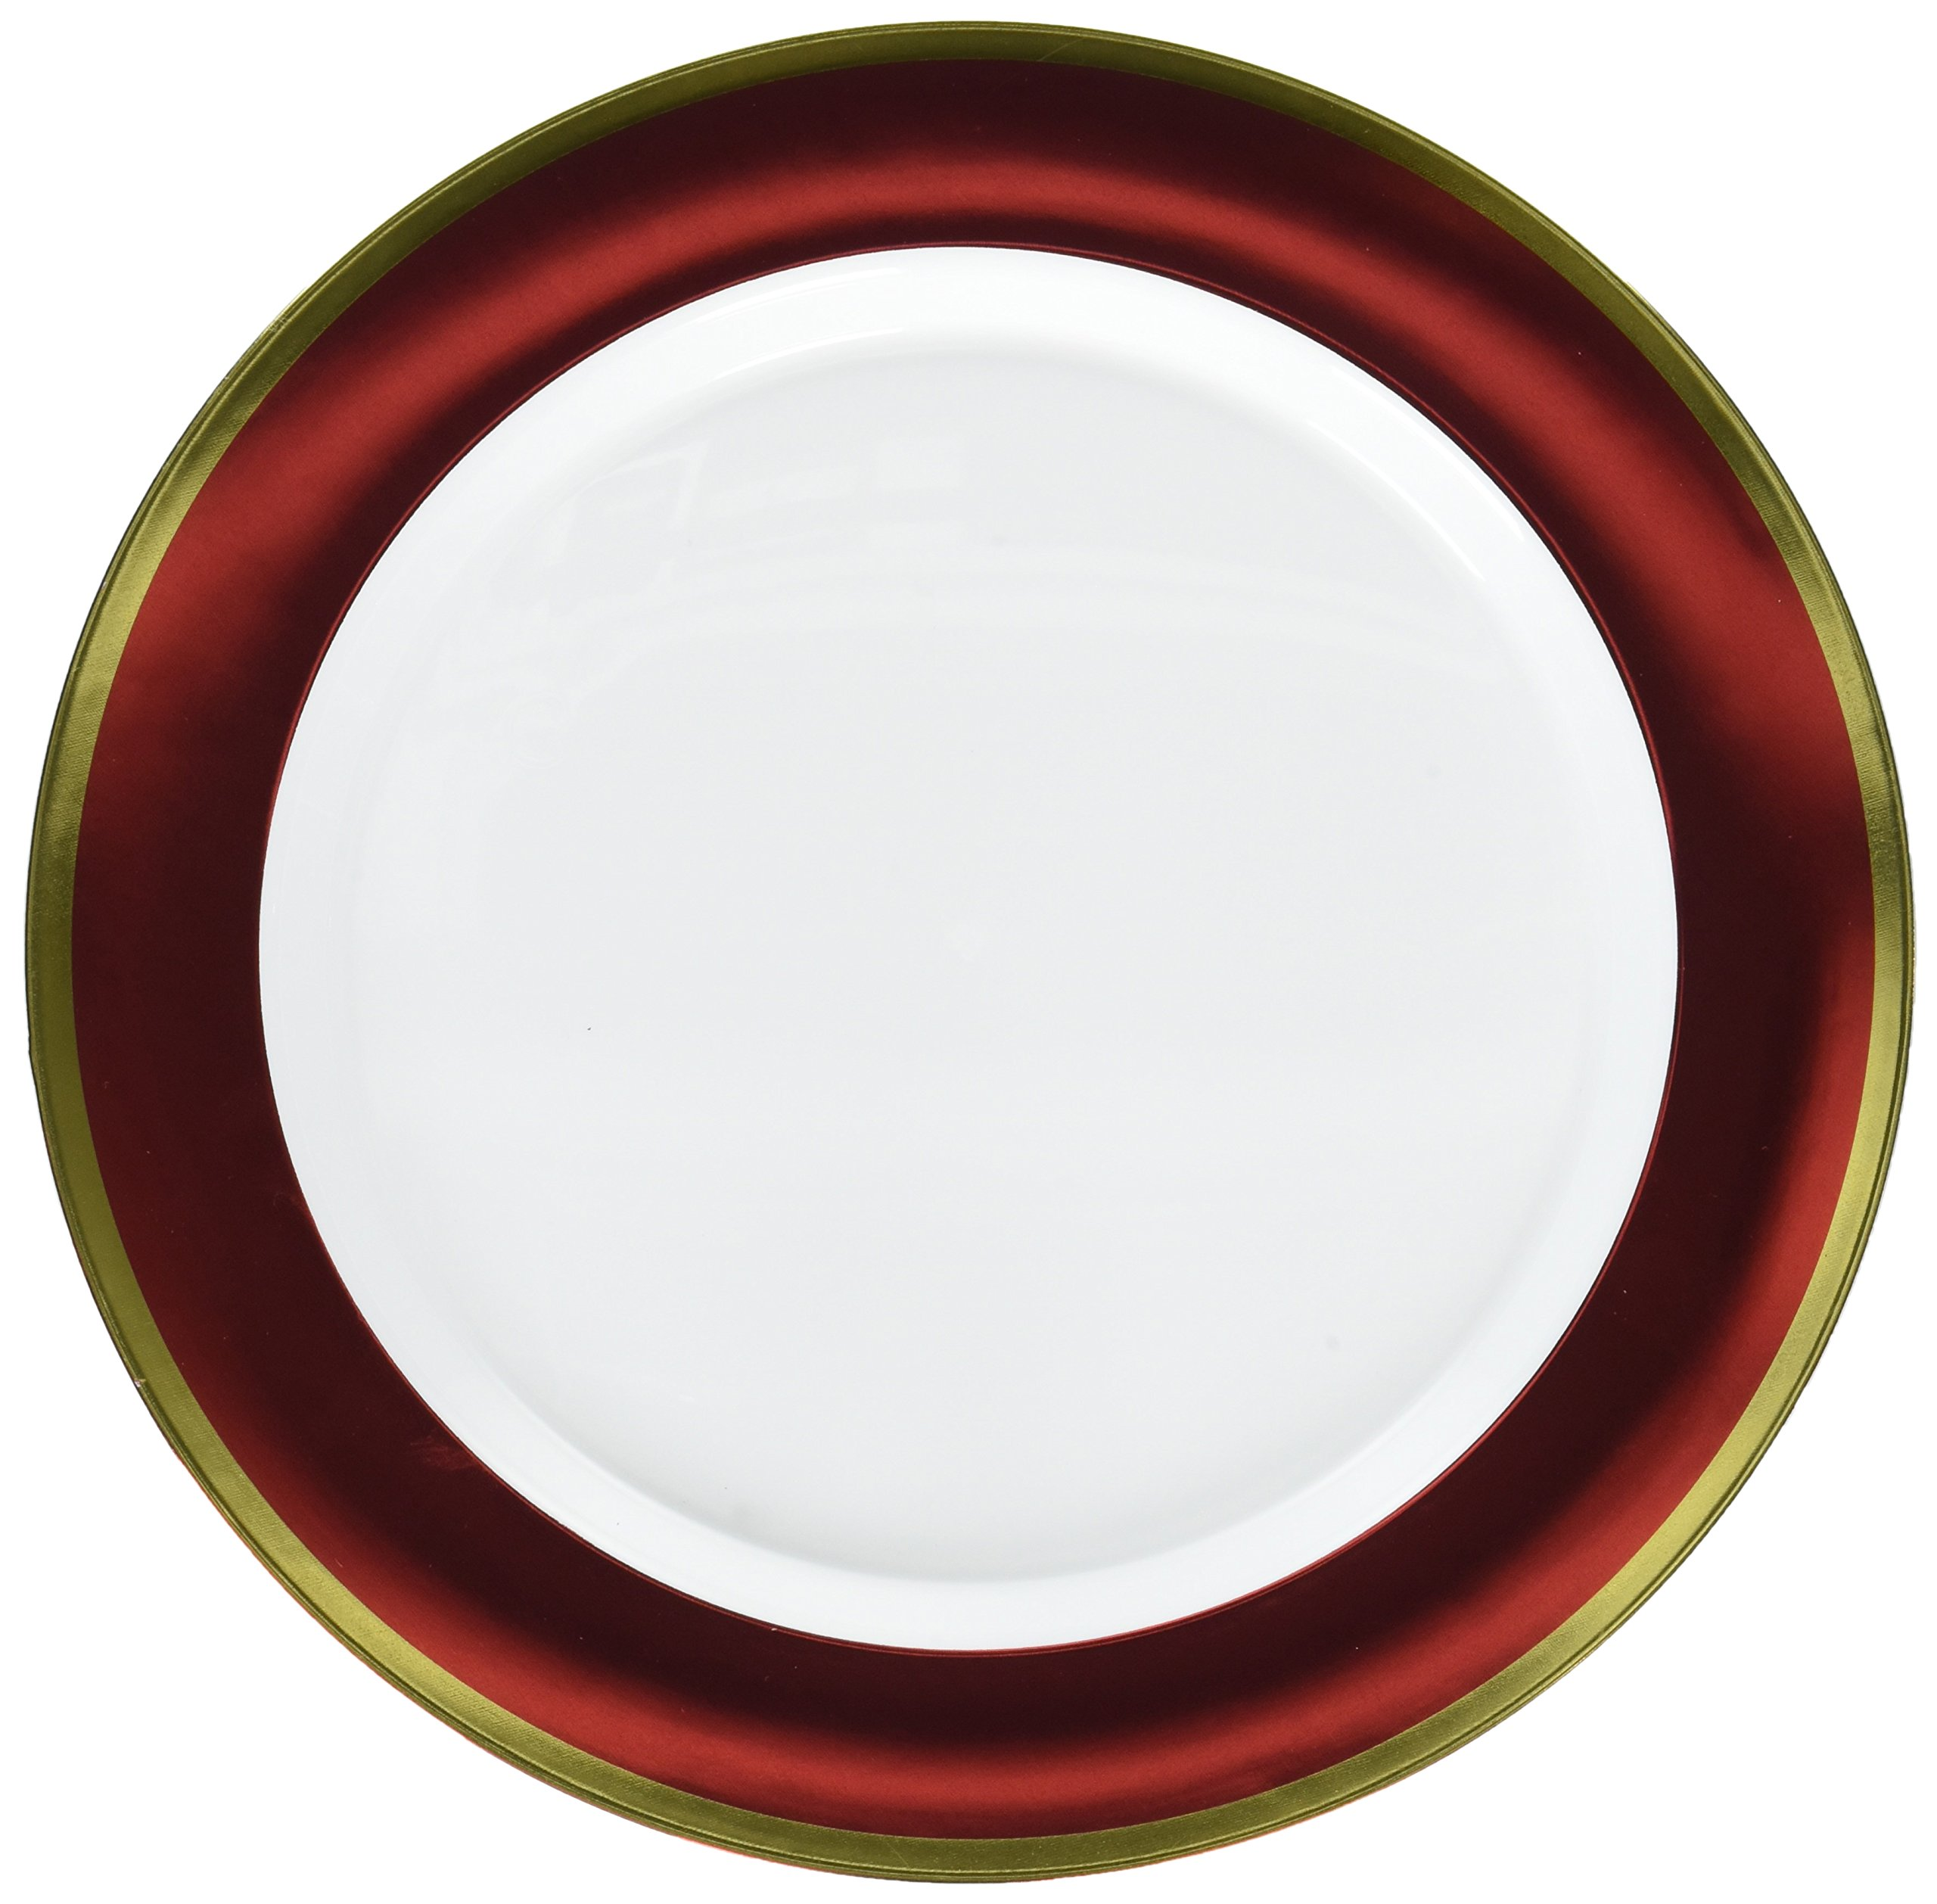 Amscan 430583.4 White Premium Plastic Round Party Plates by Amscan